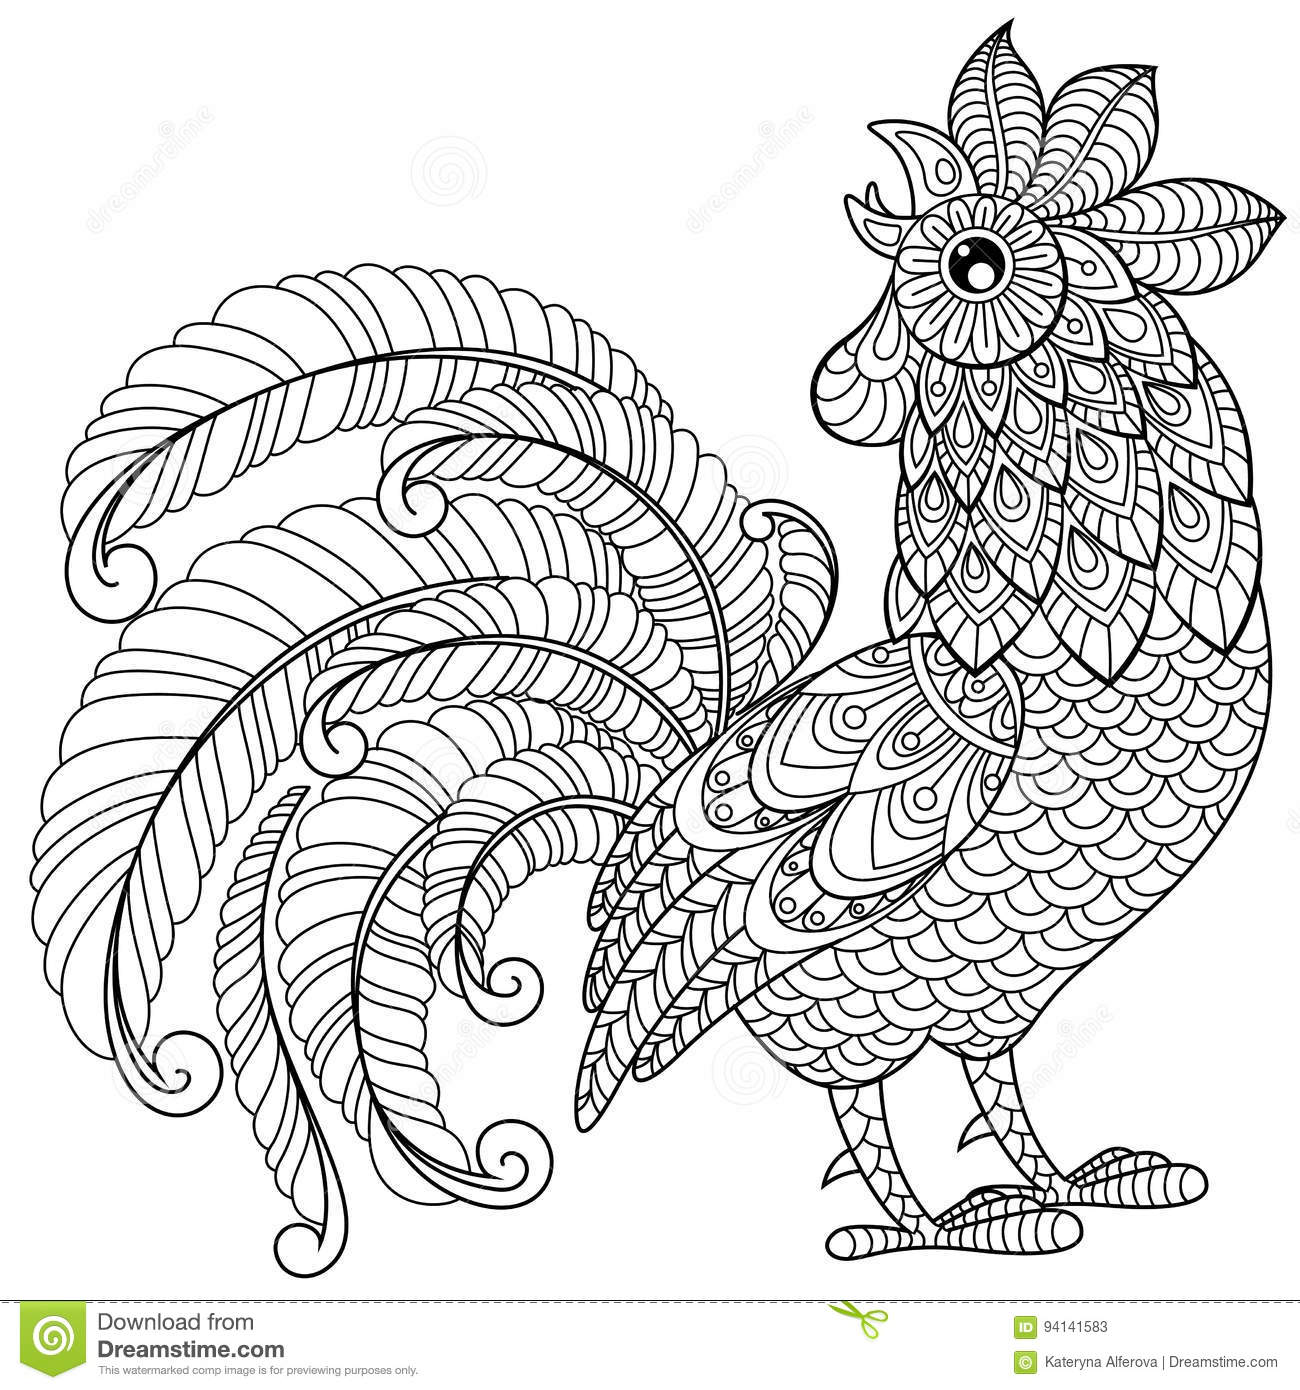 Symbol Of Chinese New Year 2017 Adult Antistress Coloring Page Black And White Hand Drawn Doodle For Book Vector Illustration